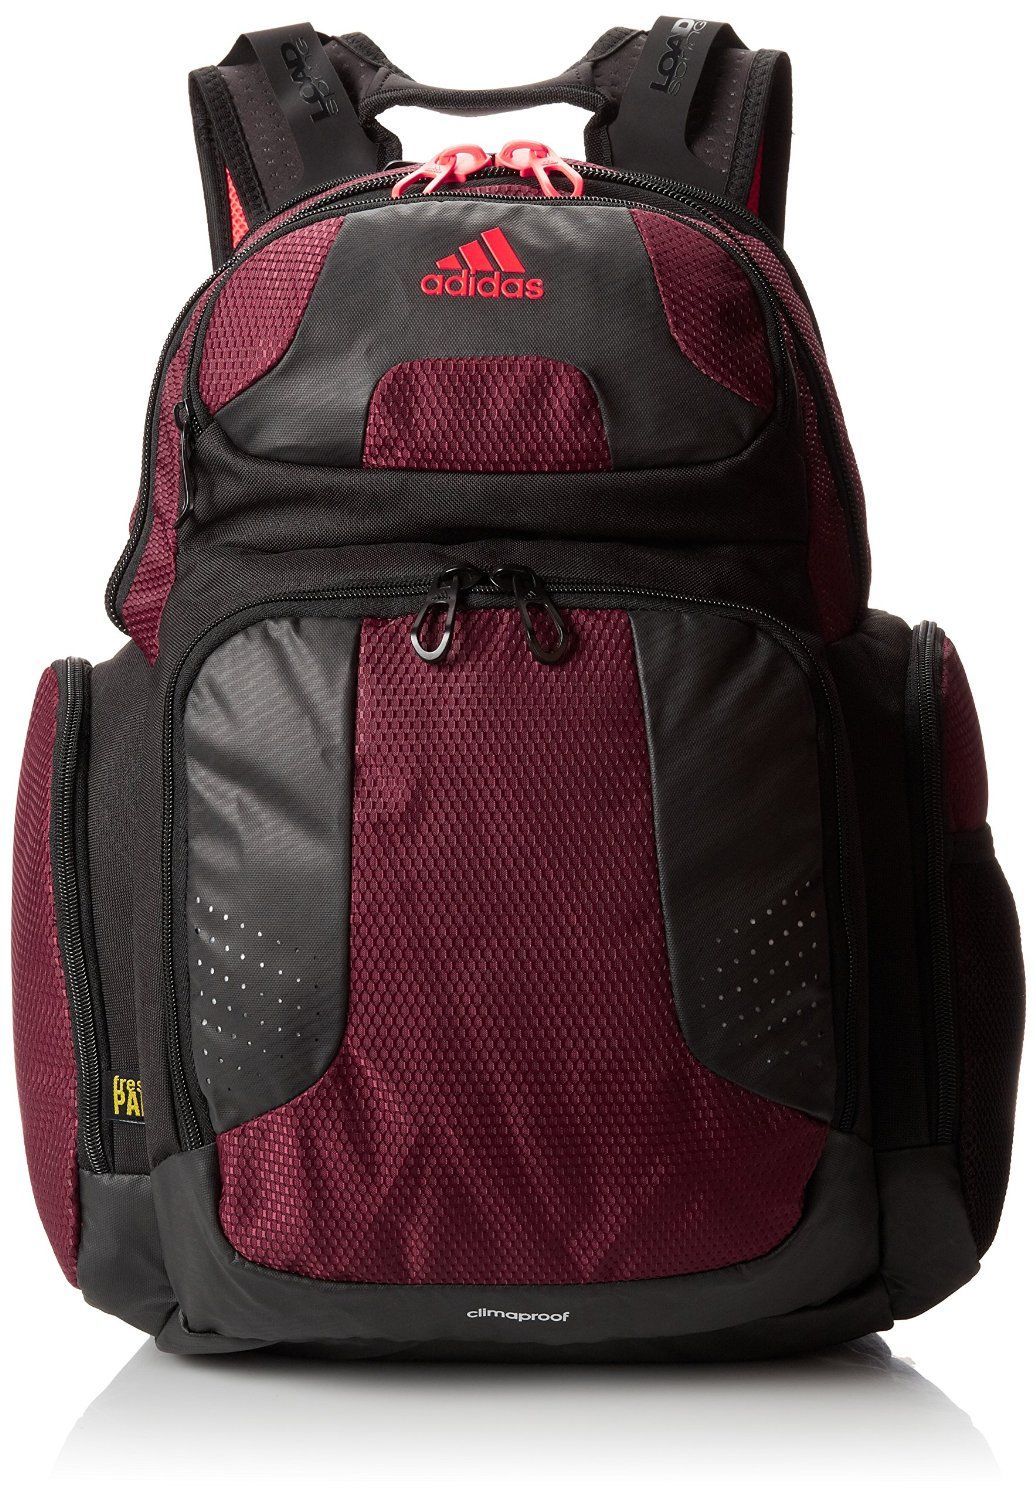 Amazon.com : adidas Climacool Strength Backpack, Dark Red/Solar Red ...